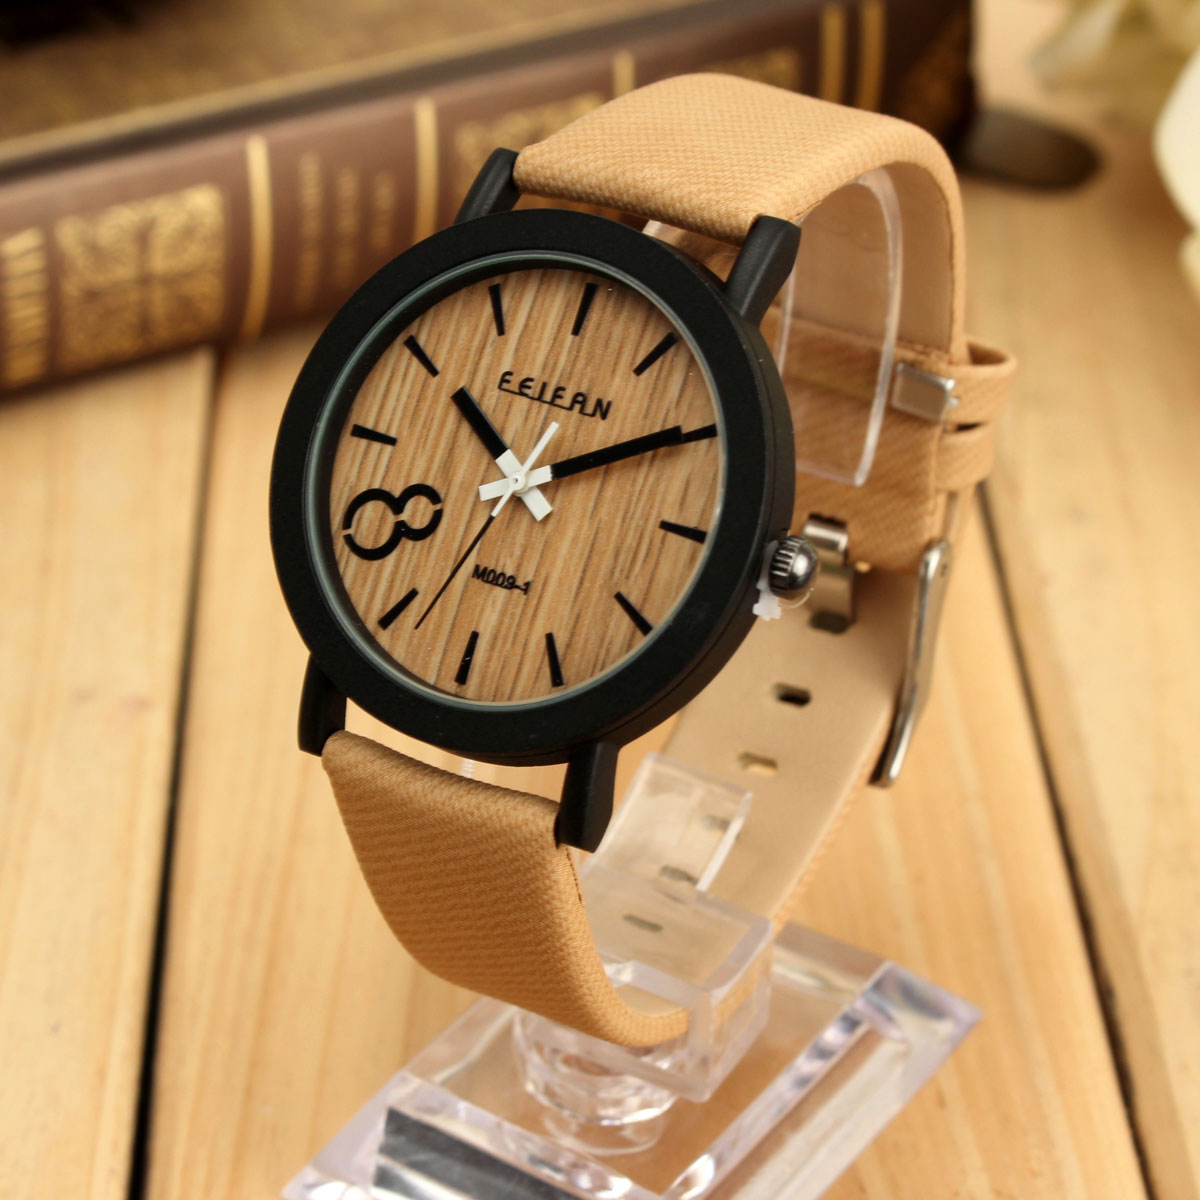 Unisex-Fashion-Vintage-Wooden-Color-Leather-Strap-Quartz-